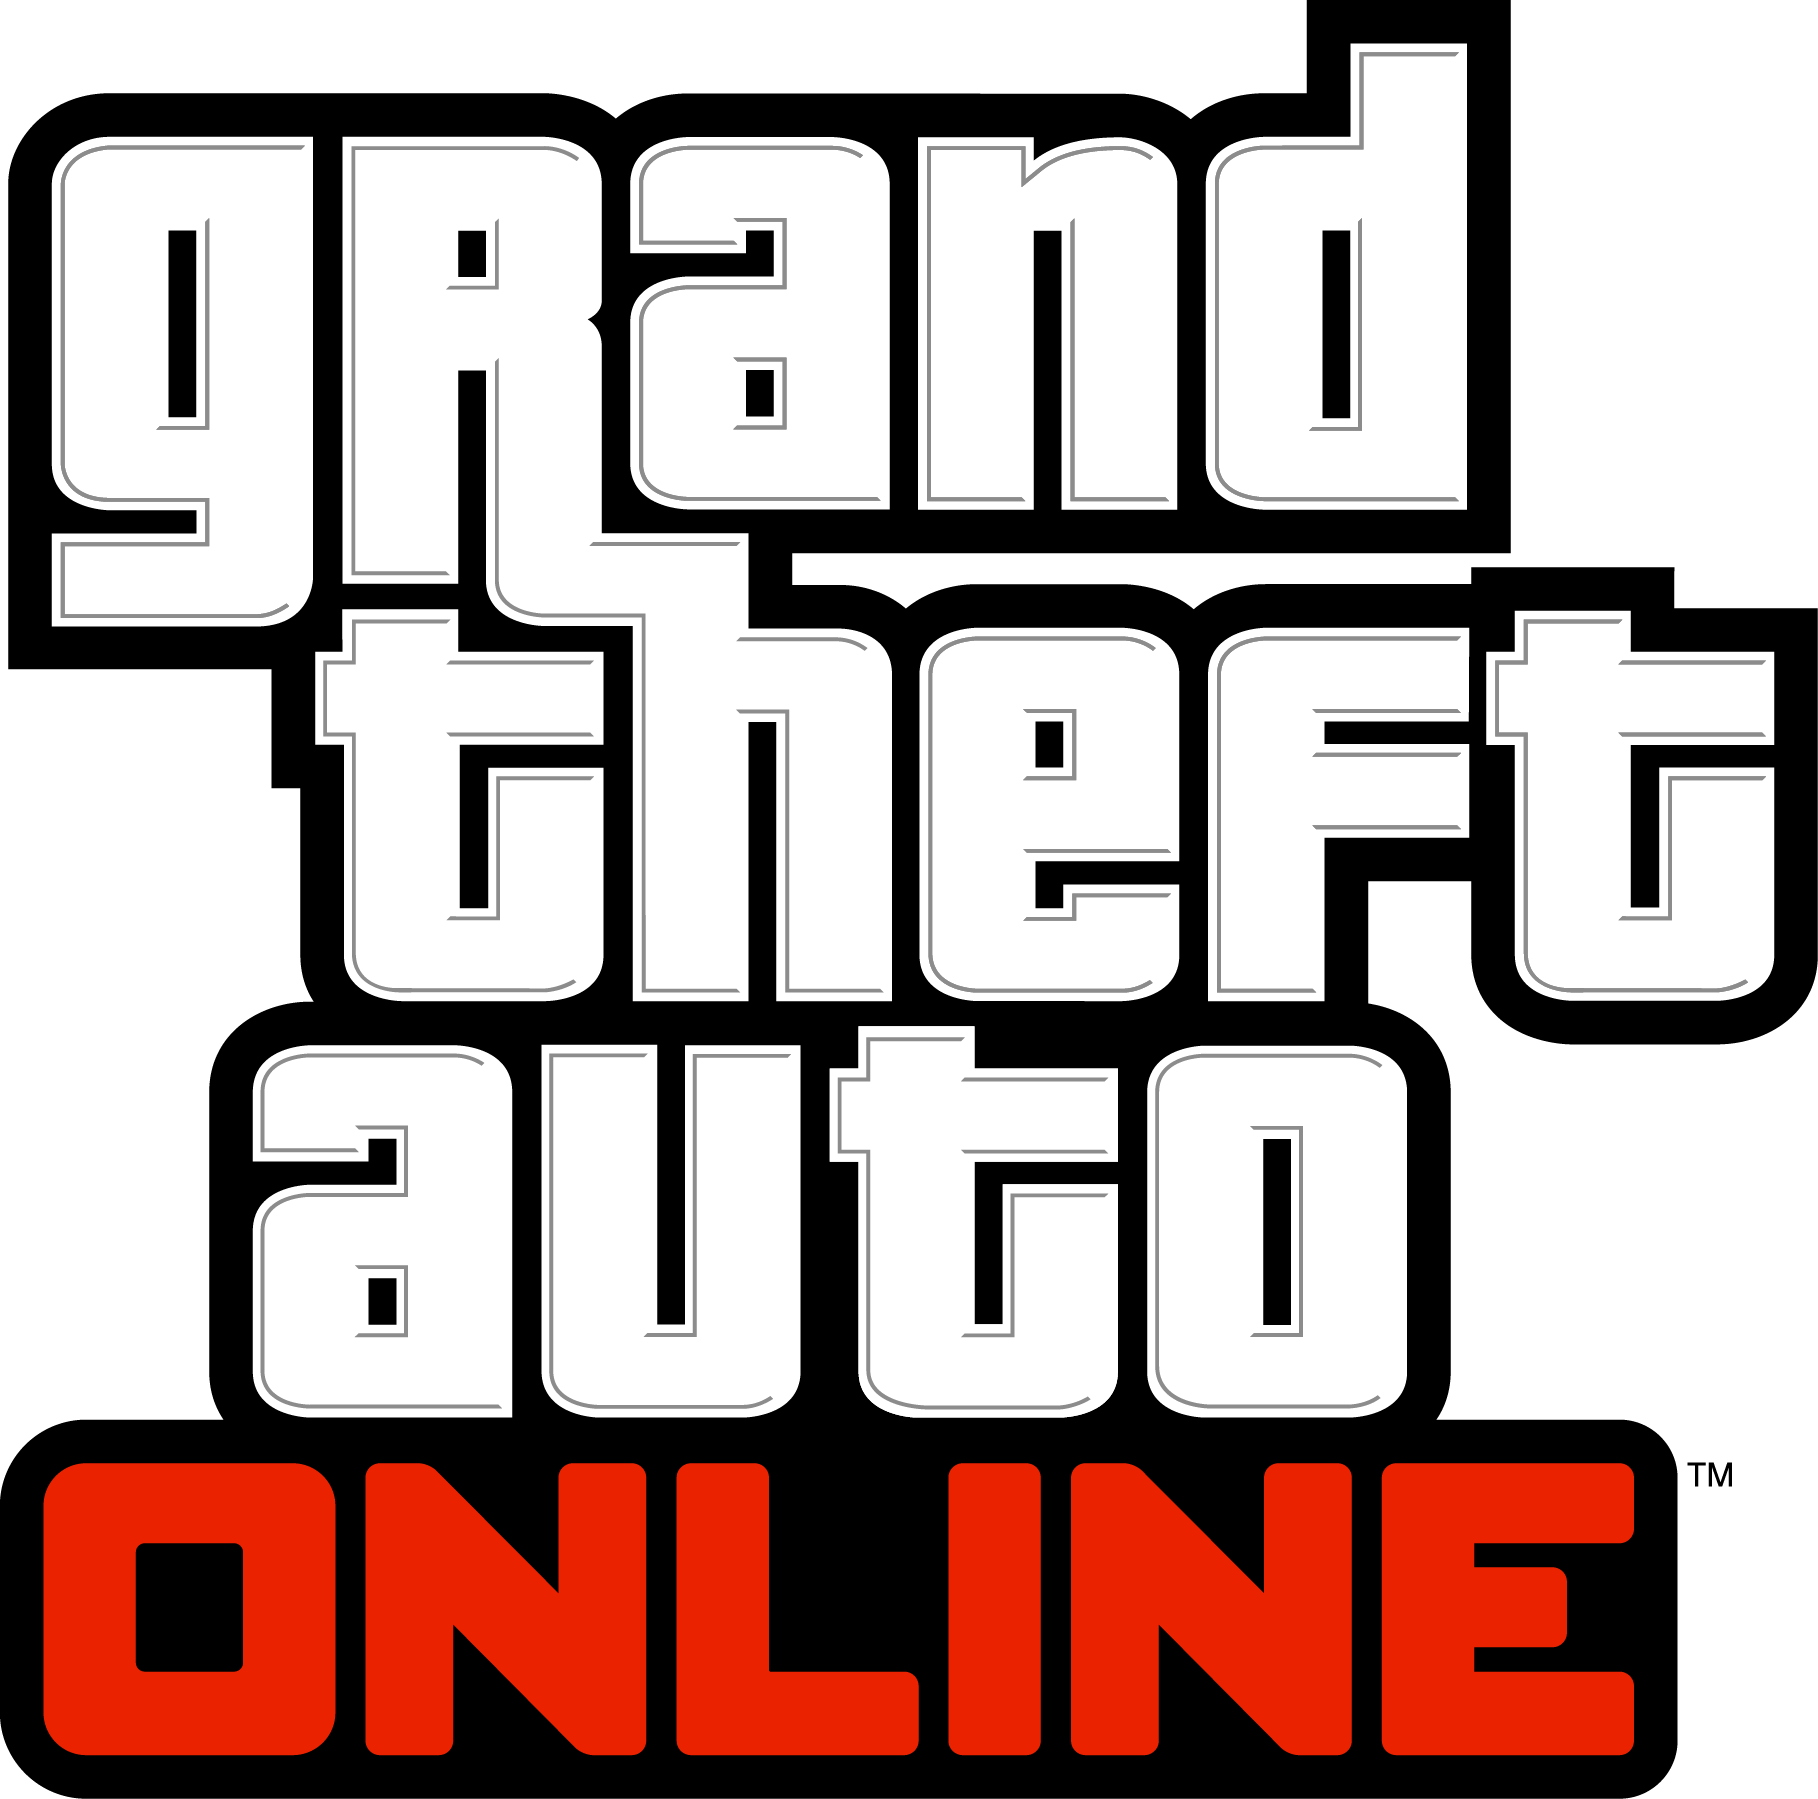 Download Grand Theft Auto Online Logo Grand Theft Auto V Ps3 Game Full Size Png Image Pngkit